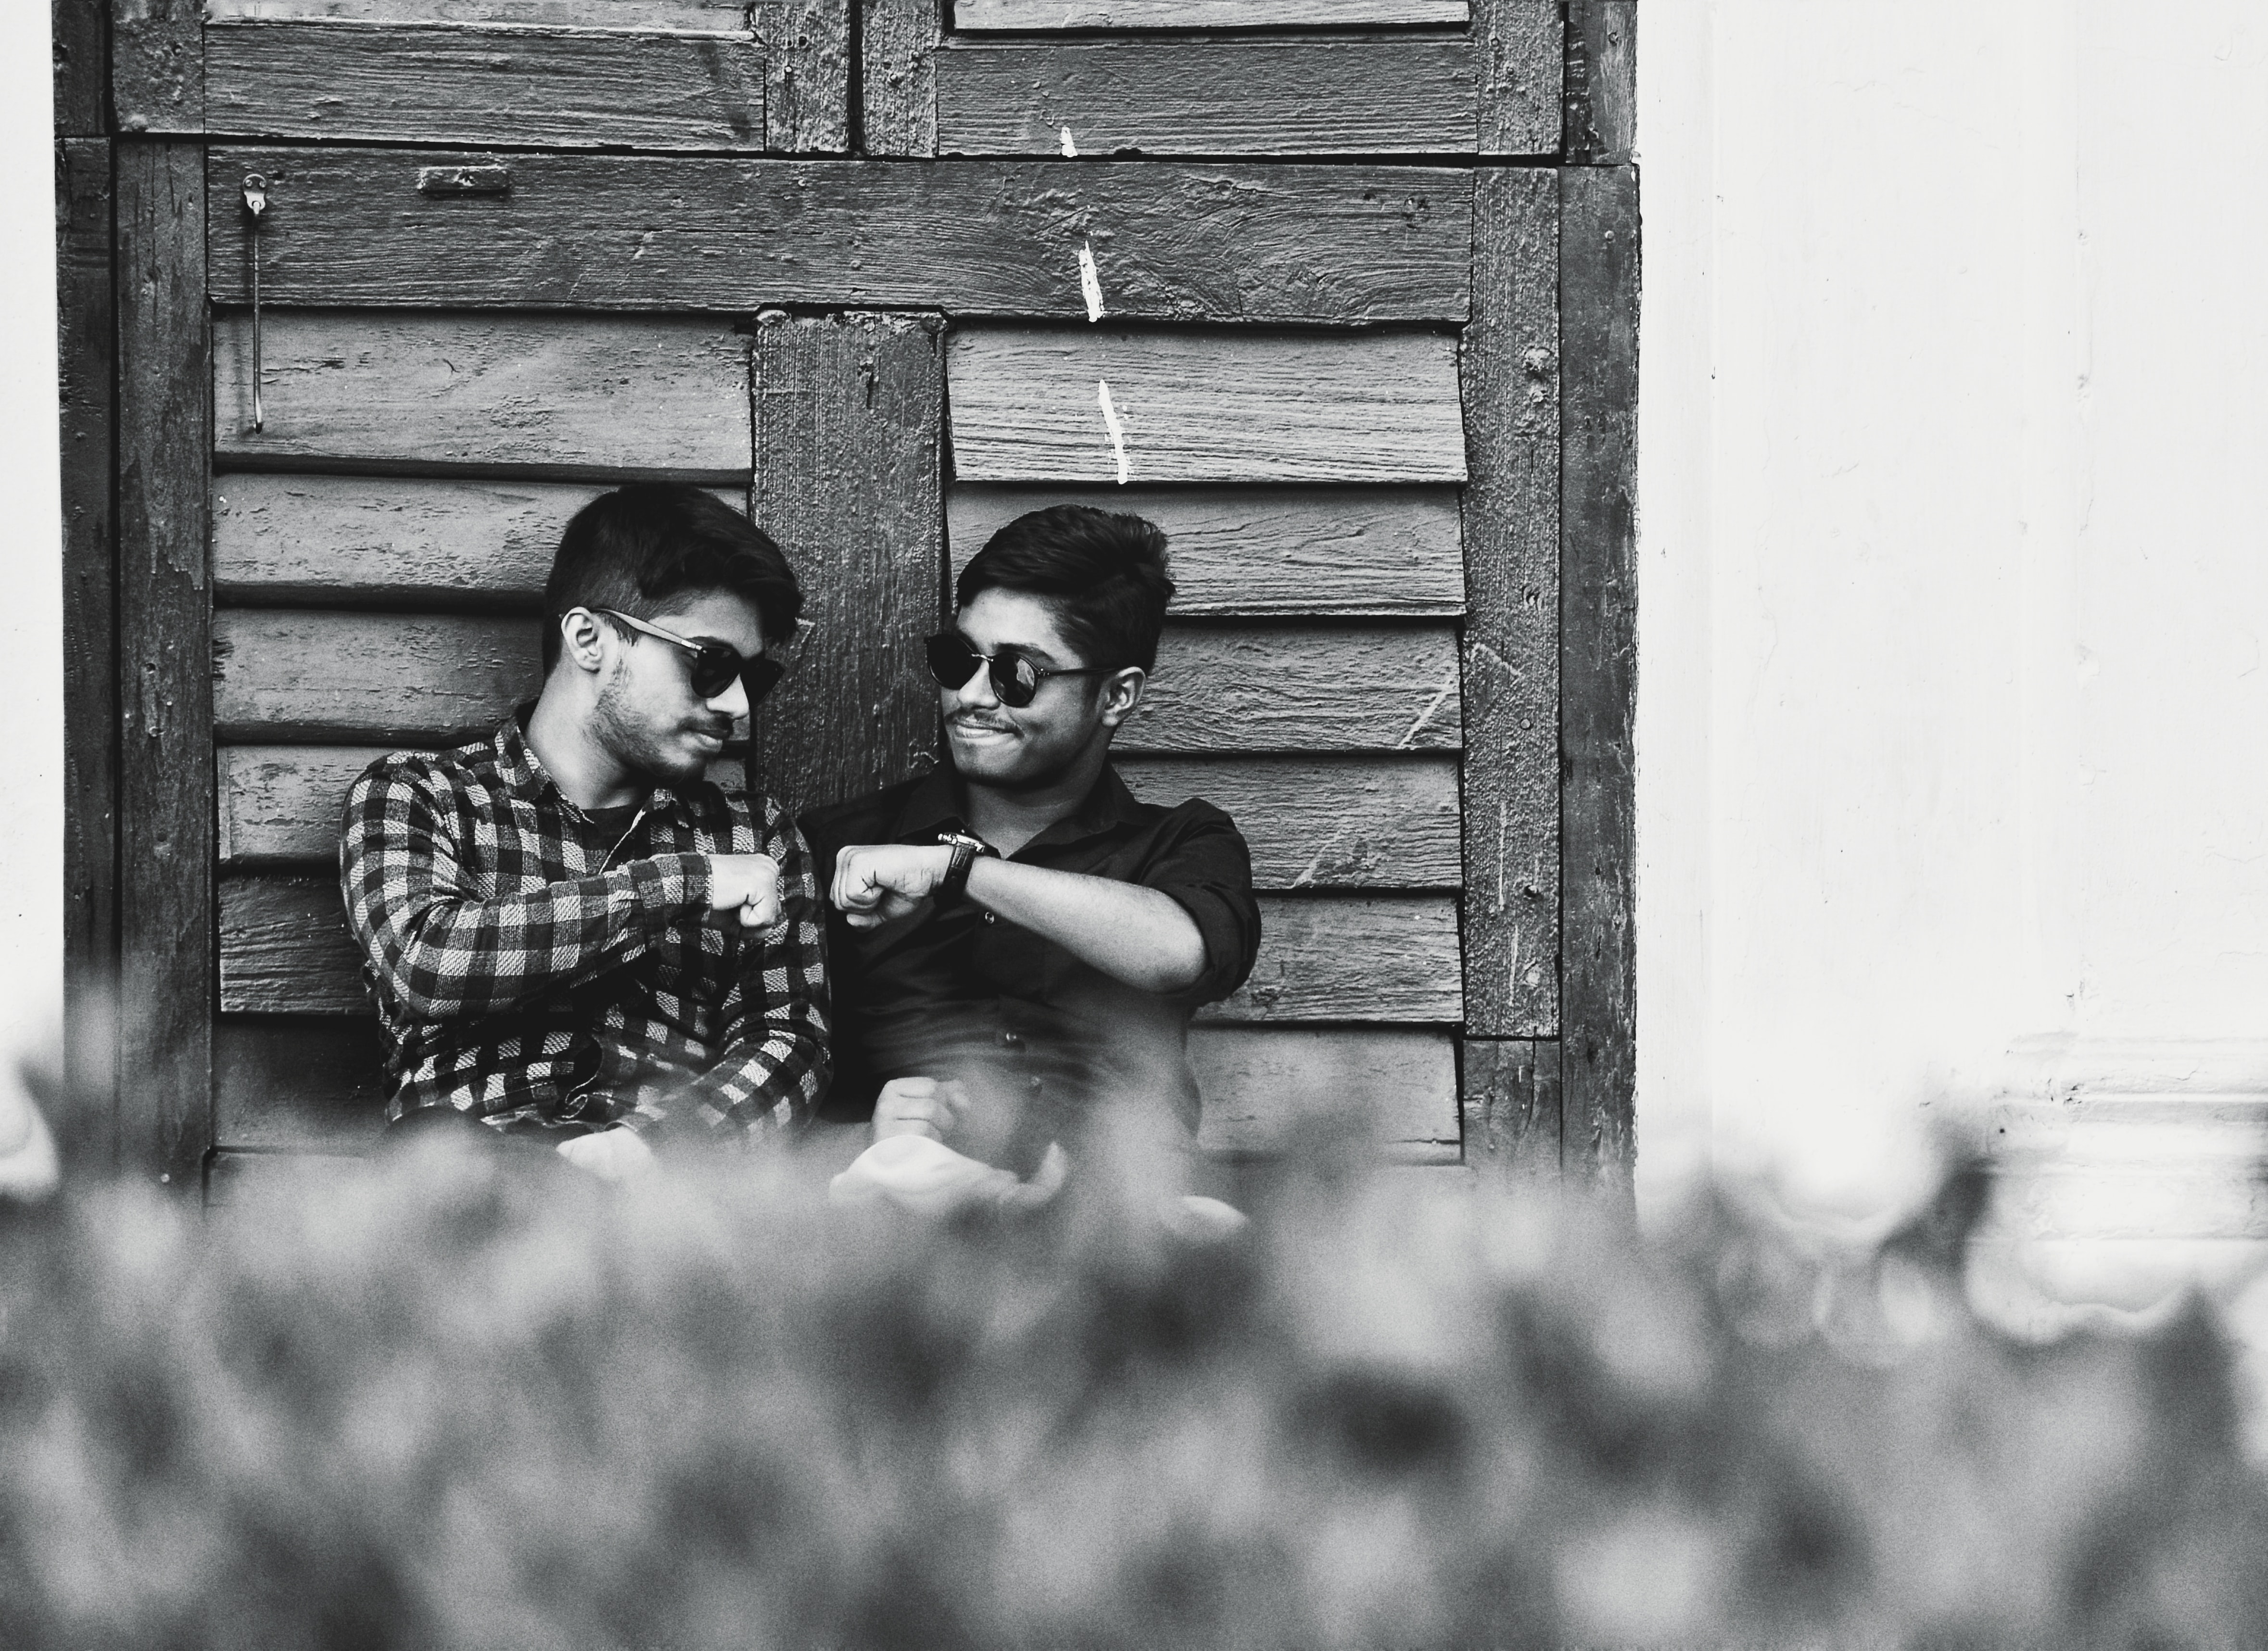 two men sitting while doing fist bomb grayscale photo